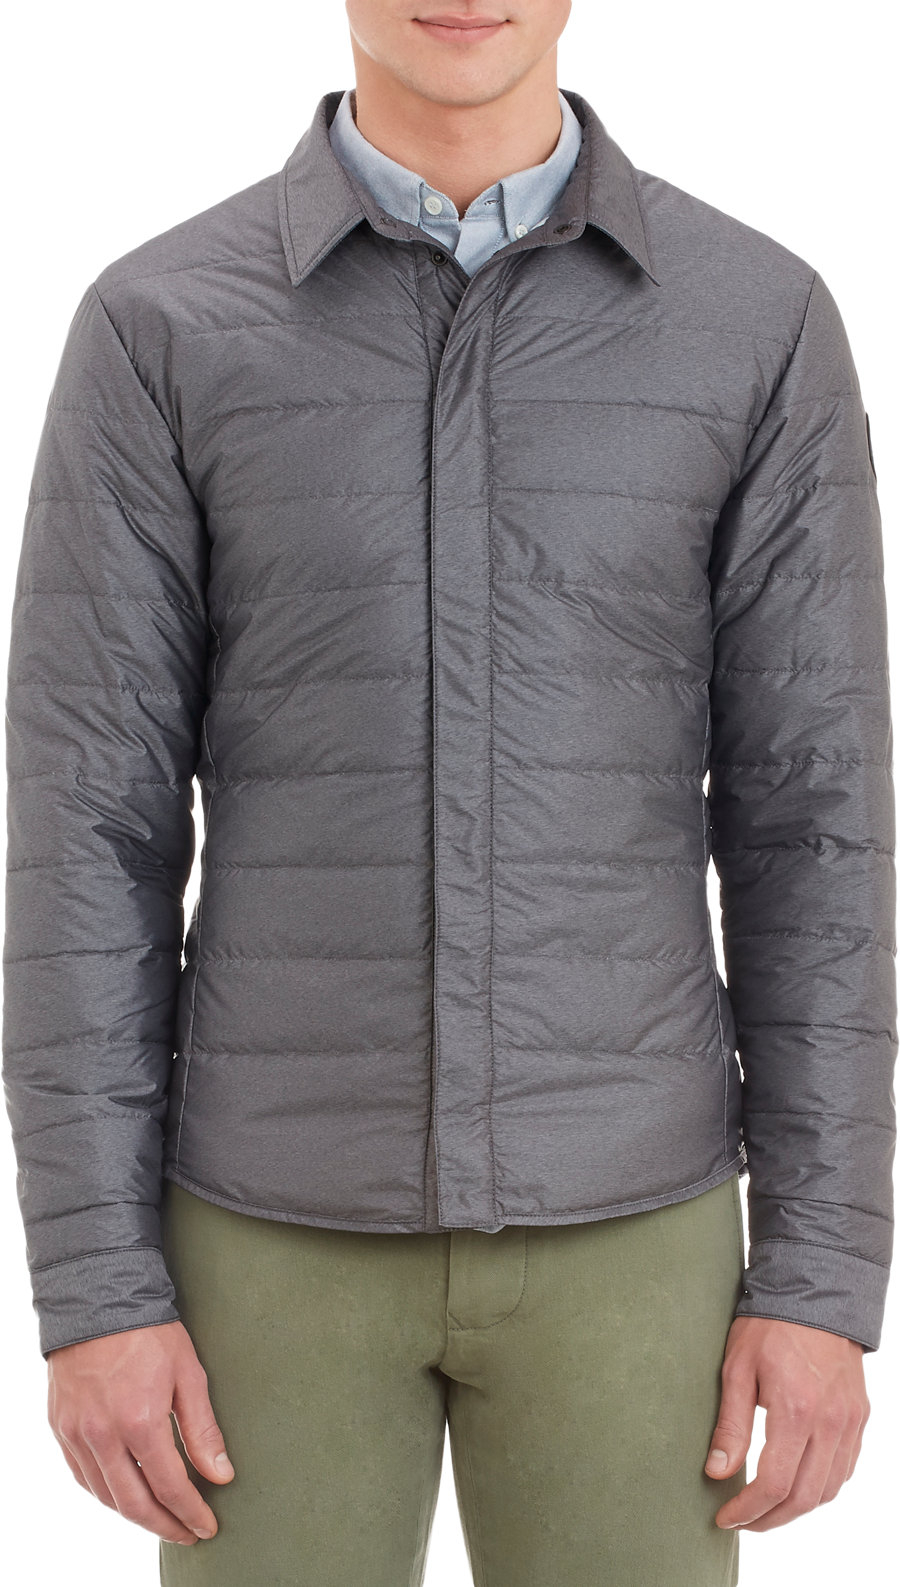 Canada Goose Lightweight Down Jacket In Gray For Men Grey